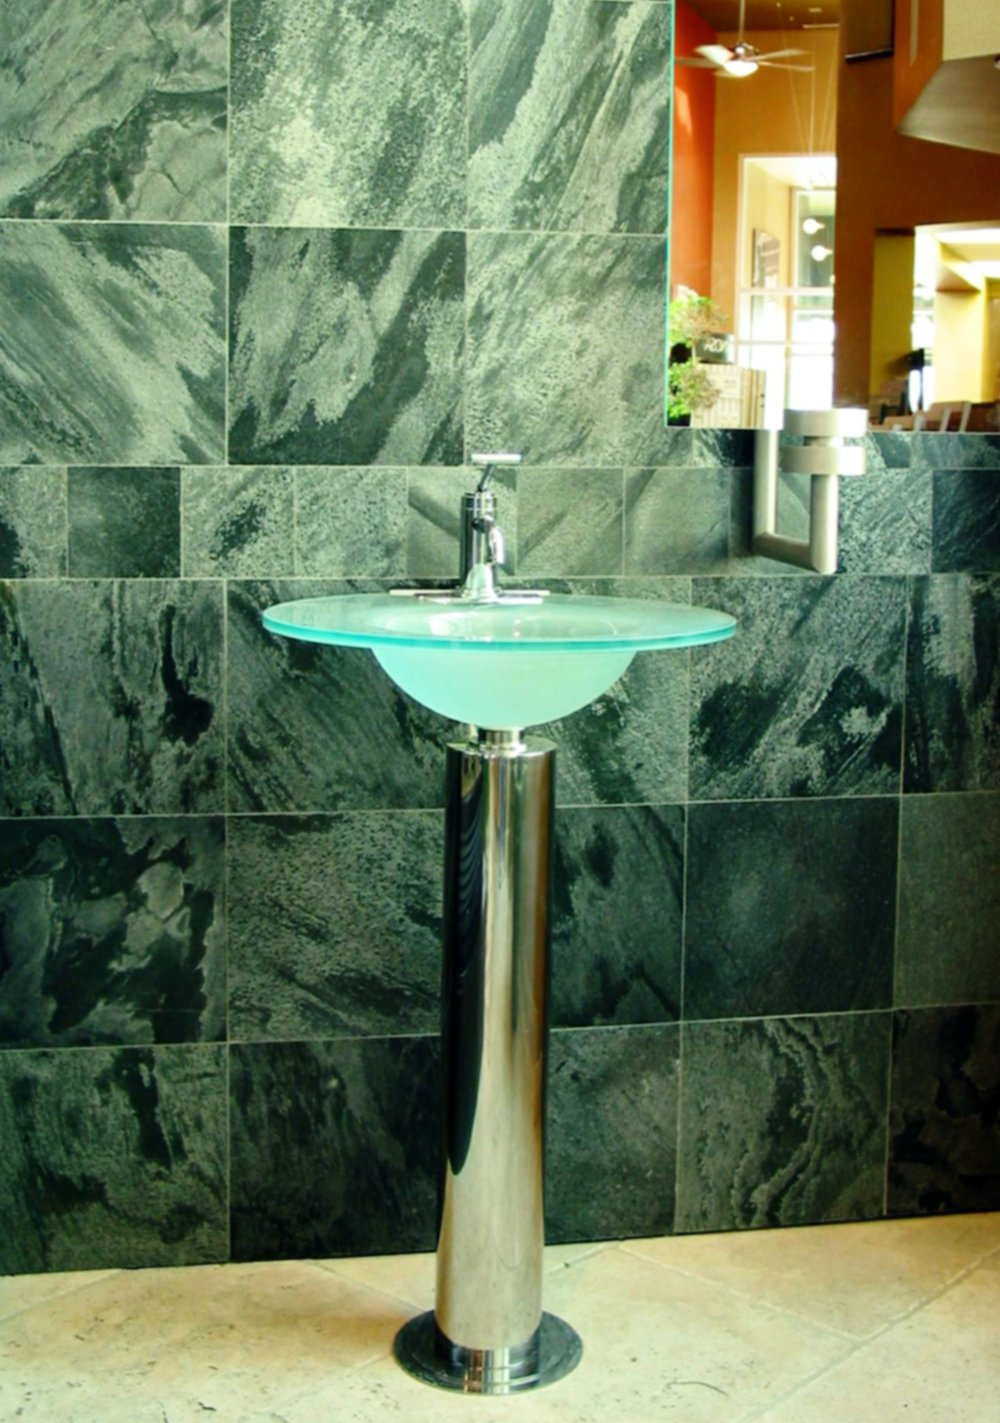 Slate wall glass bathroom sink ideas inspiration.JPG